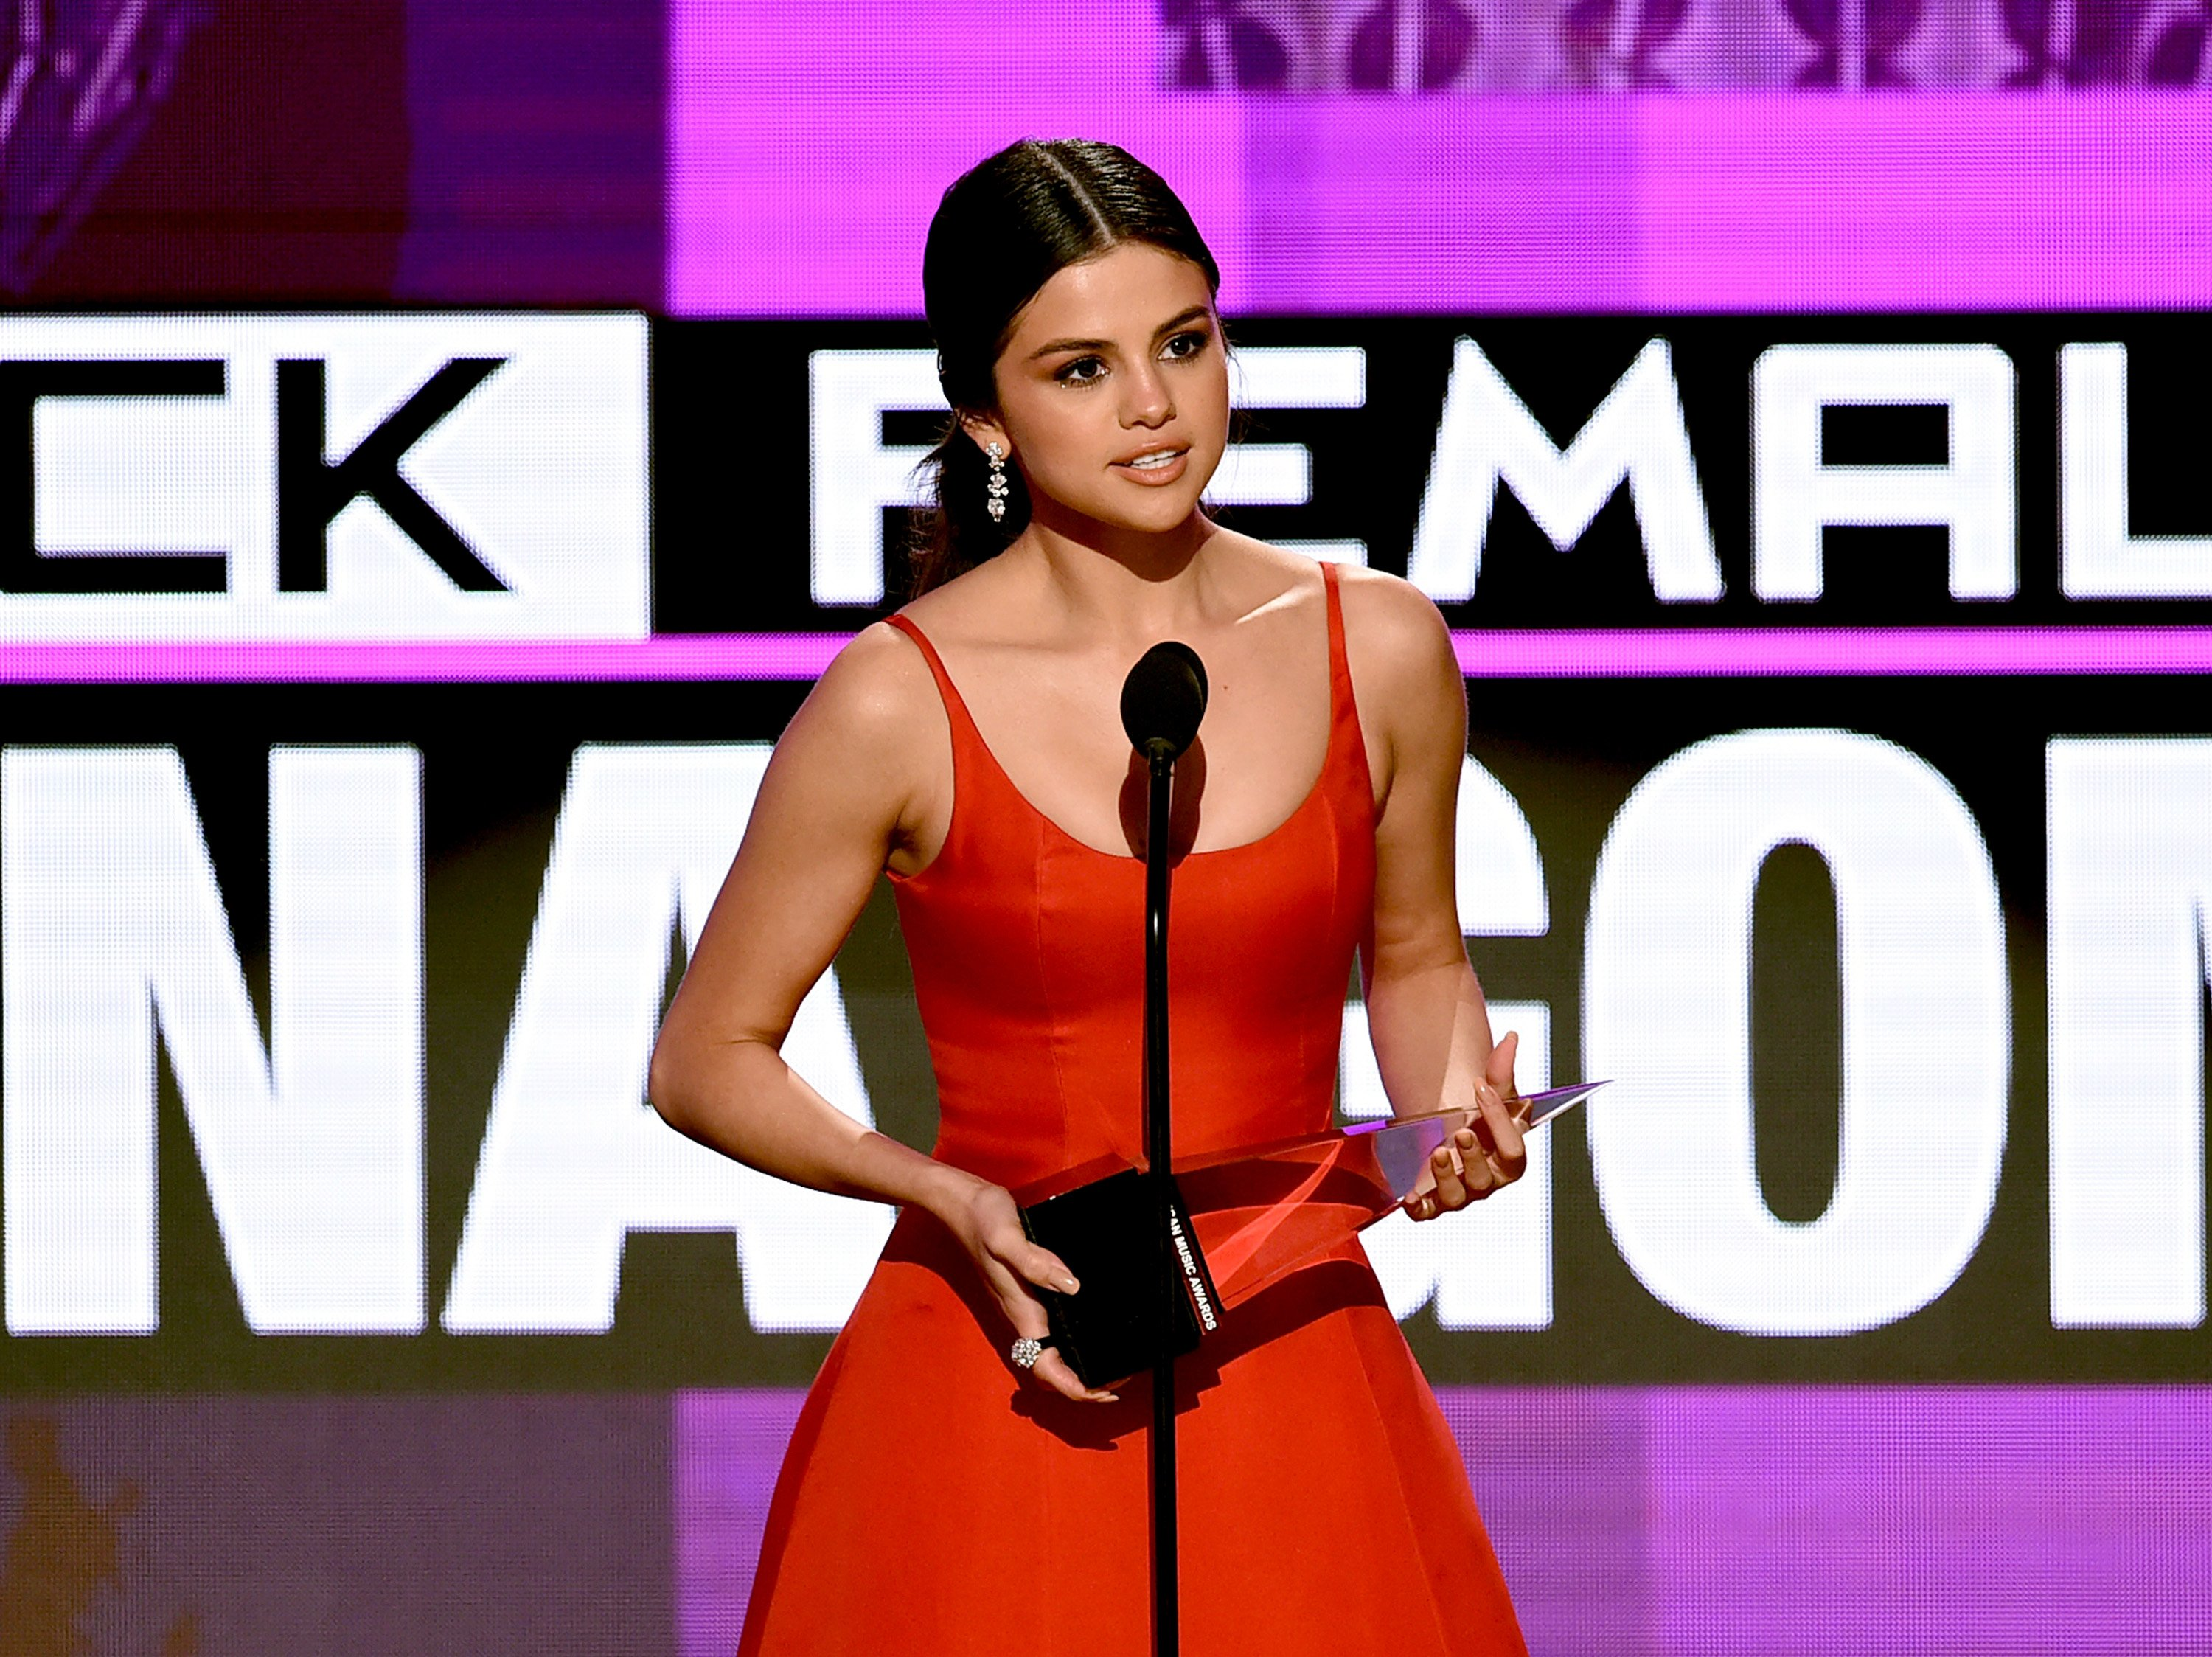 Selena Gomez accepts Favorite Pop/Rock Female Artist onstage during the 2016 American Music Awards at Microsoft Theater on November 20, 2016 in Los Angeles